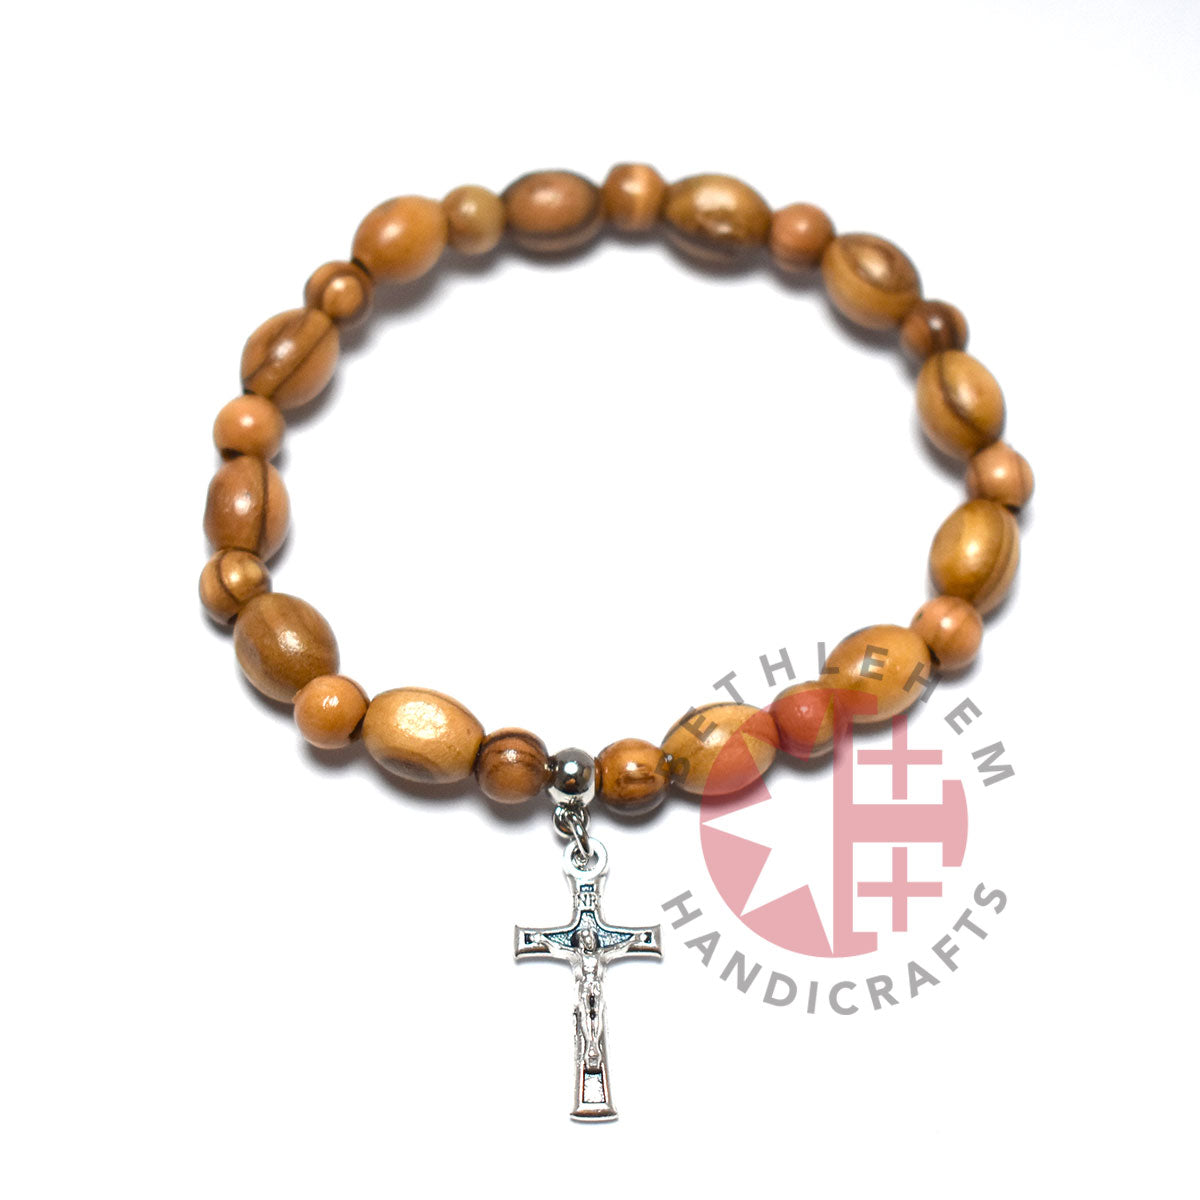 Oval Olive Wood 9*6 mm Beads Bracelet with Crucifix Pendant